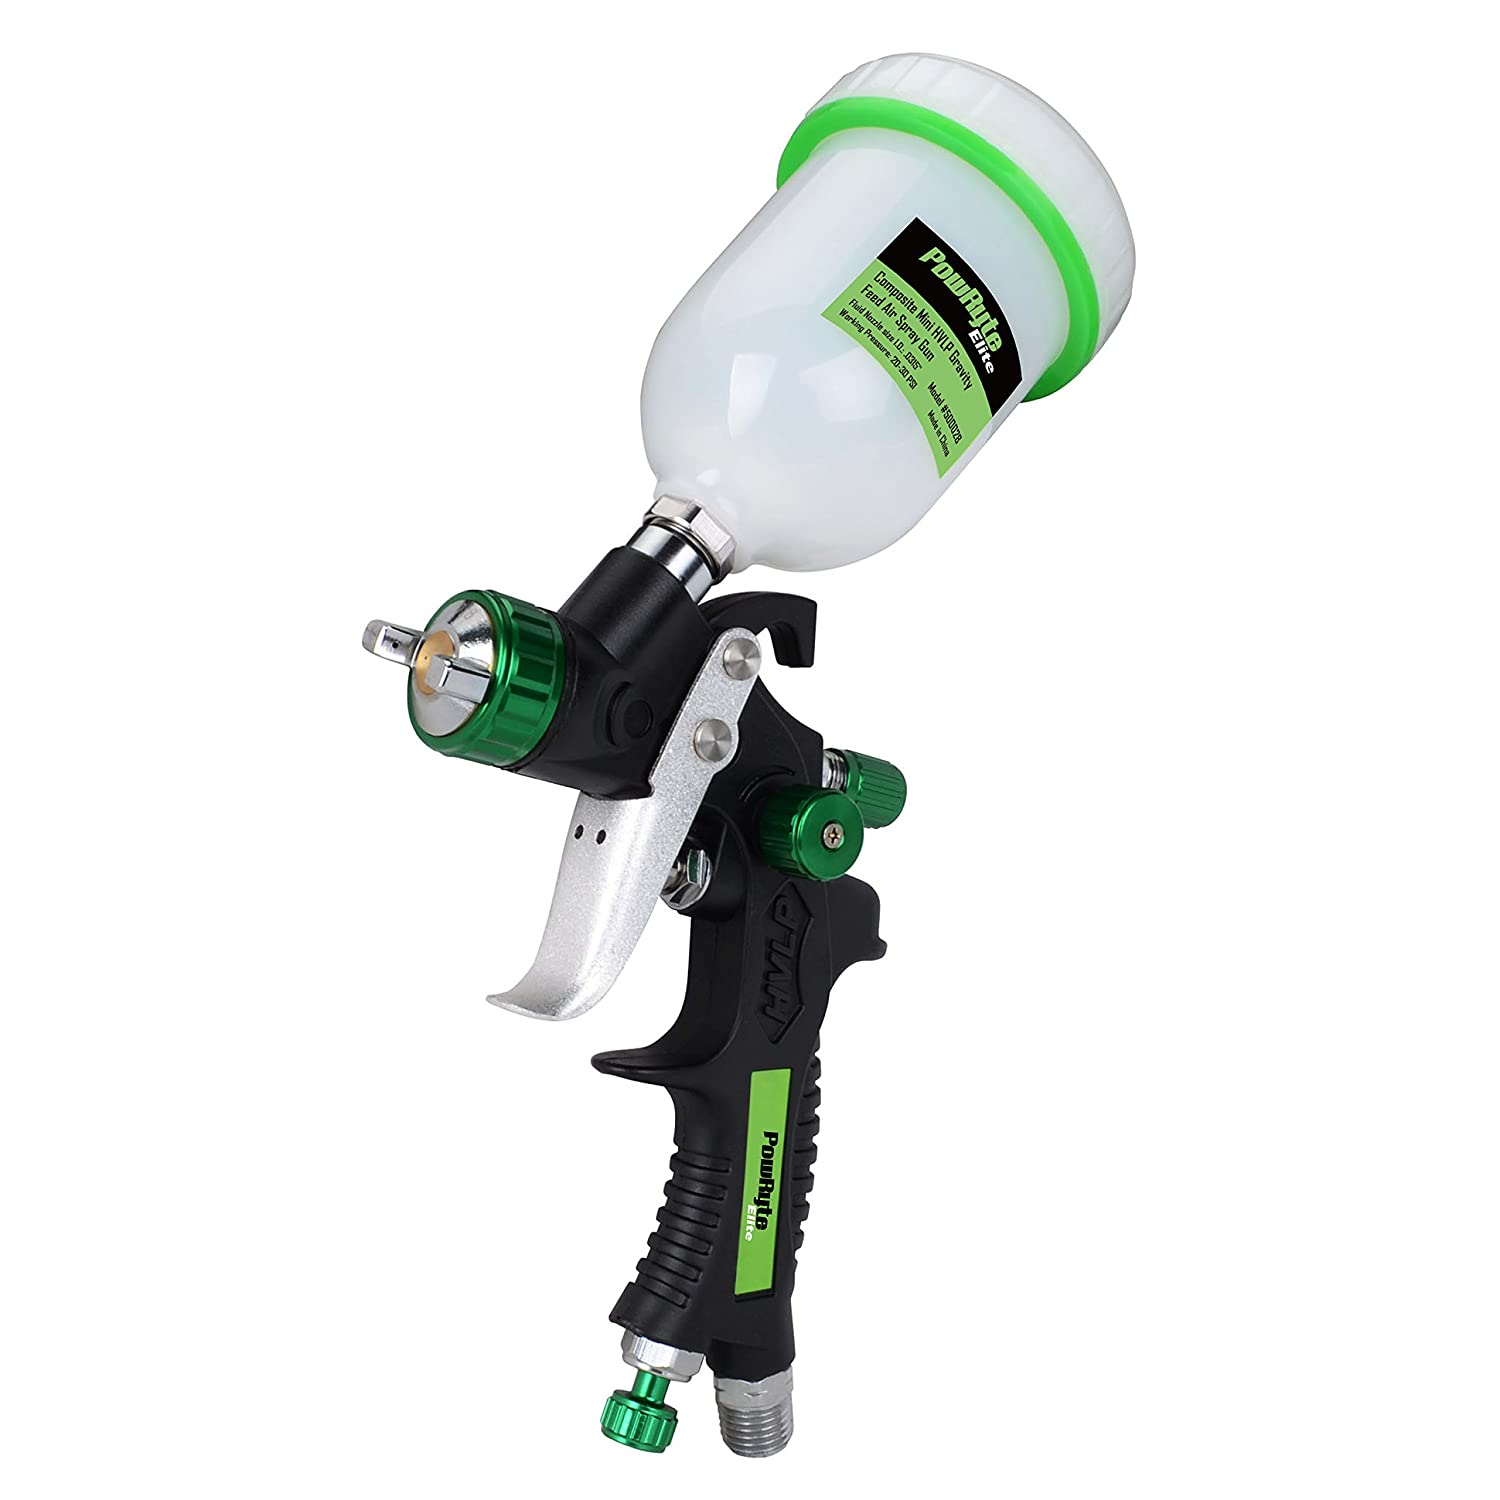 PowRyte Elite 4.2 Oz Composite Mini HVLP Gravity Feed Air Spray Gun - 0.8mm Nozzle